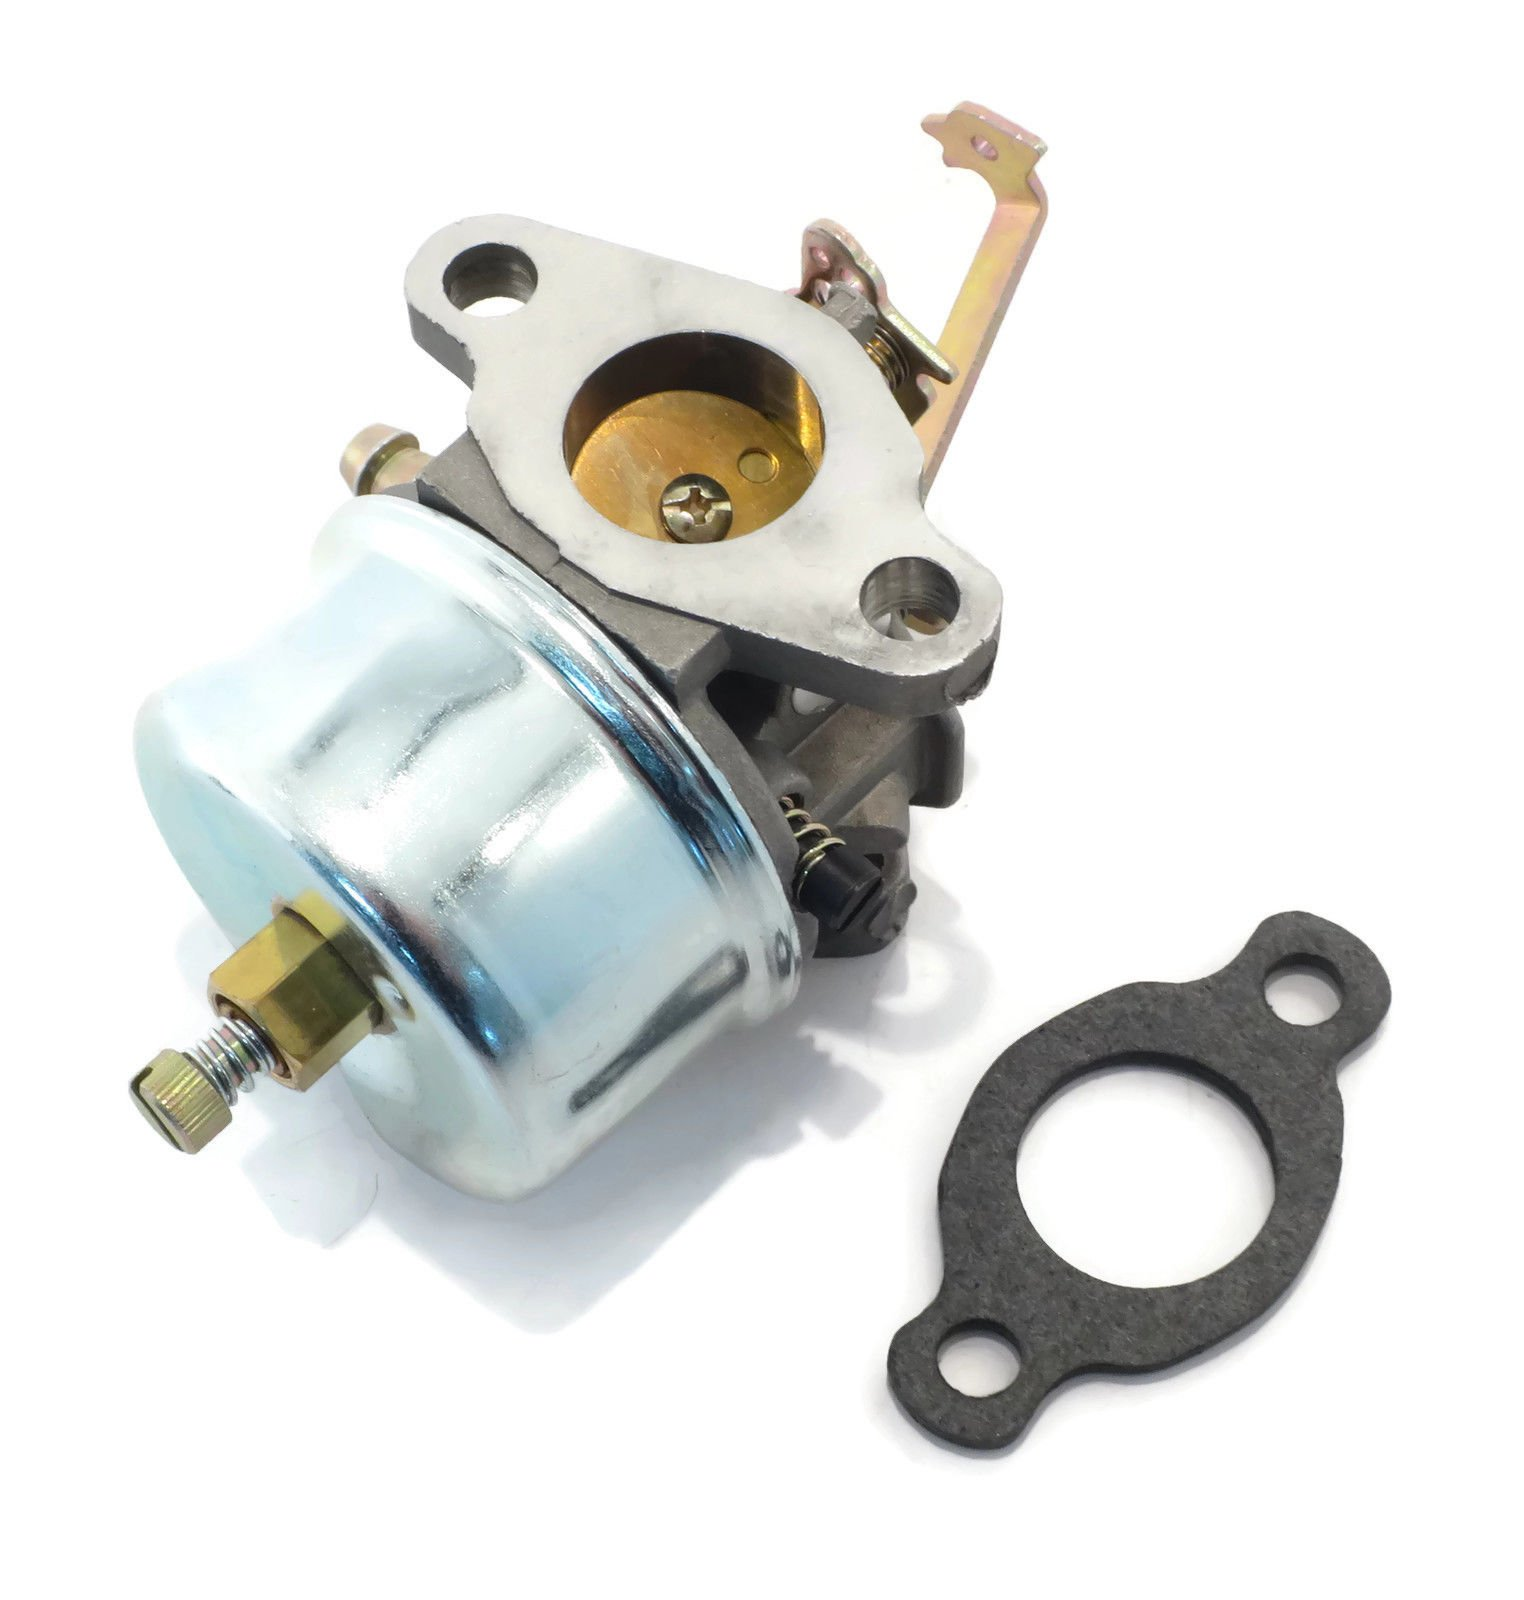 FitBest Carburetor Carb for Tecumseh 631828 631067 631067A 632076 H50 H60 HH60 HH70 Engines w/Gasket